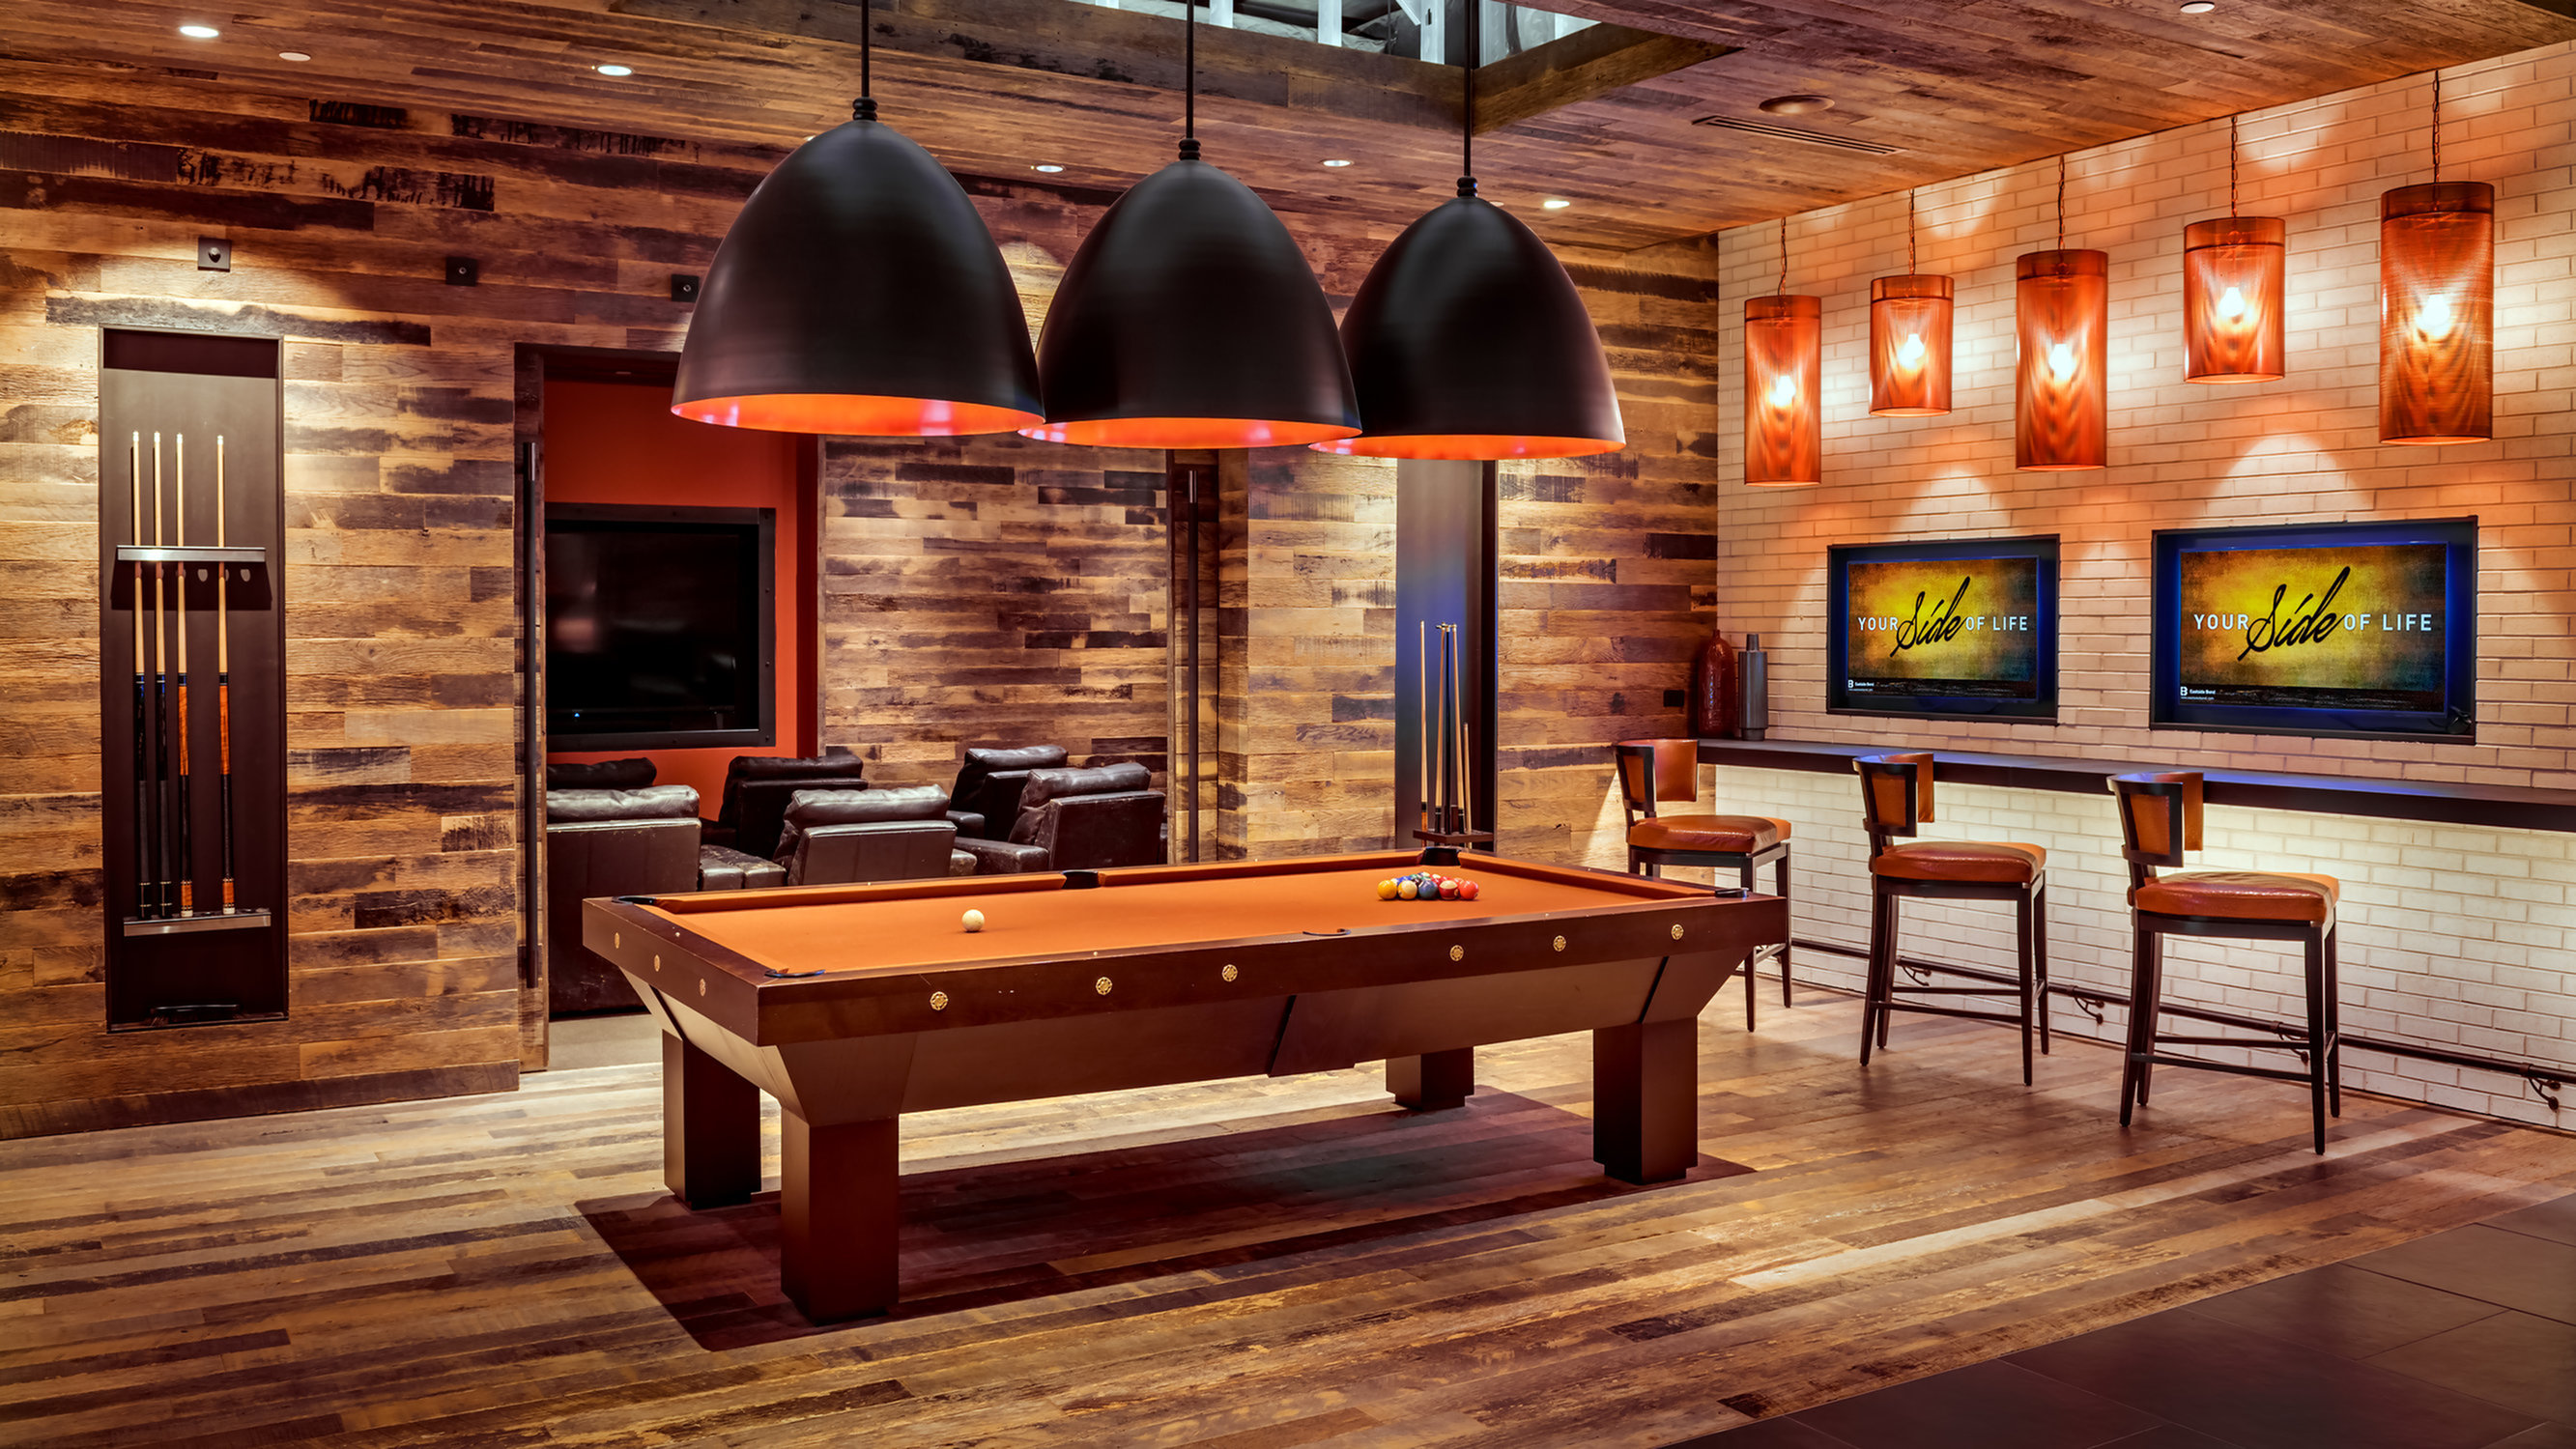 Image of Billiards Lounge for Eastside Bond